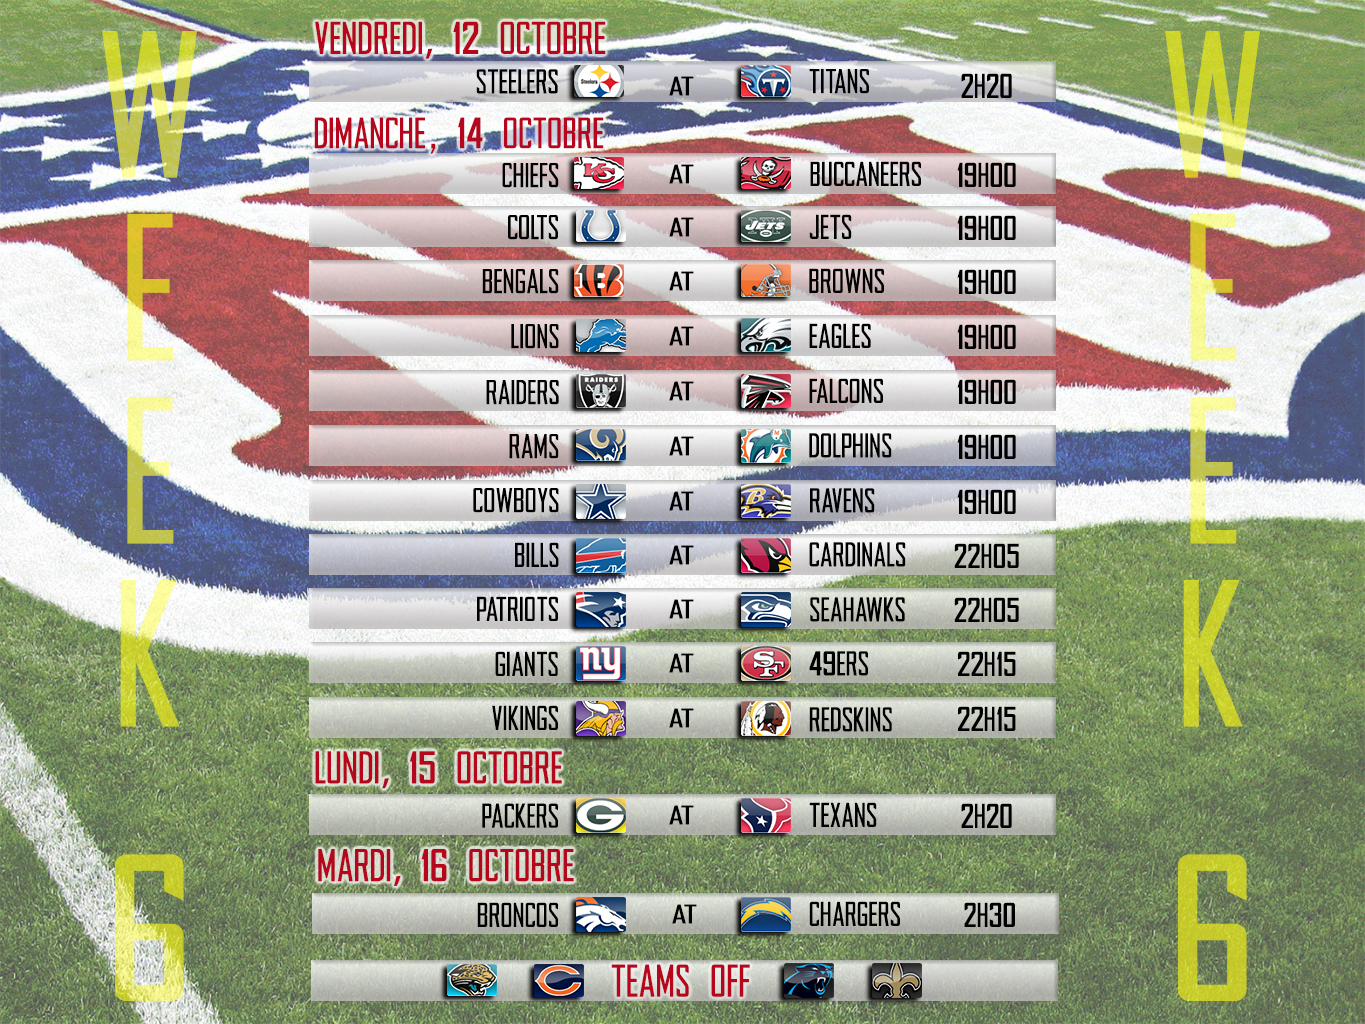 Calendrier Nfl 2020 2019.Calendrier Nfl 2019